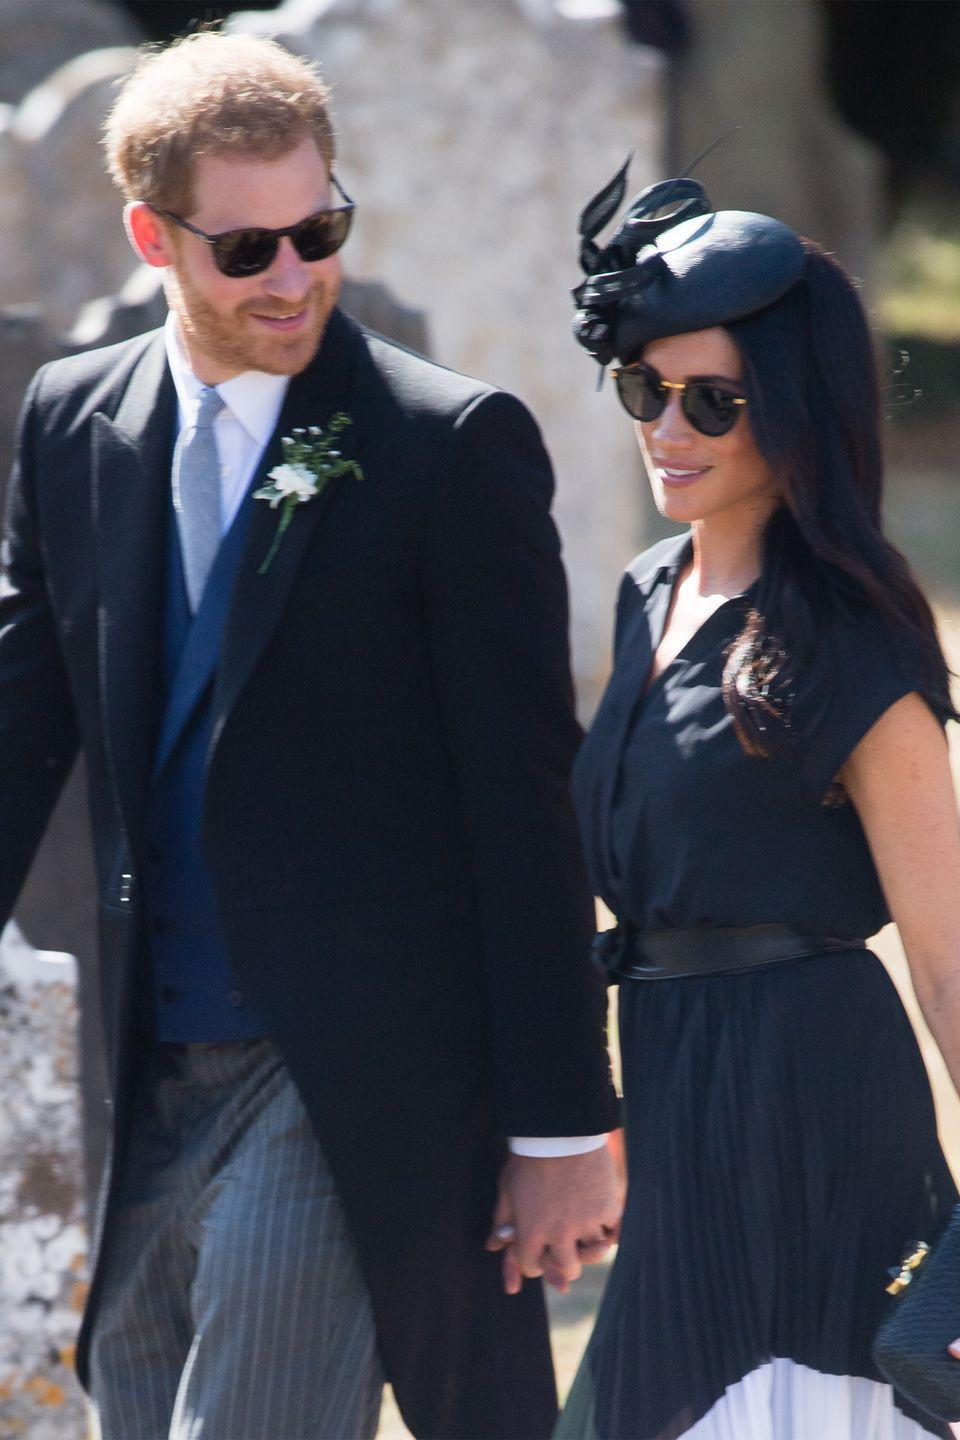 "<p>Rocking a very <a href=""https://www.harpersbazaar.com/celebrity/latest/a22643026/meghan-markle-charlie-van-straubenzee-wedding/"" rel=""nofollow noopener"" target=""_blank"" data-ylk=""slk:affordable look"" class=""link rapid-noclick-resp"">affordable look</a> with a Club Monaco skirt, Meghan and Harry attended the wedding of Harry's good friend, Charlie Van Straubenzee, where the prince served as best man. It was also Meghan's 37th birthday. </p>"